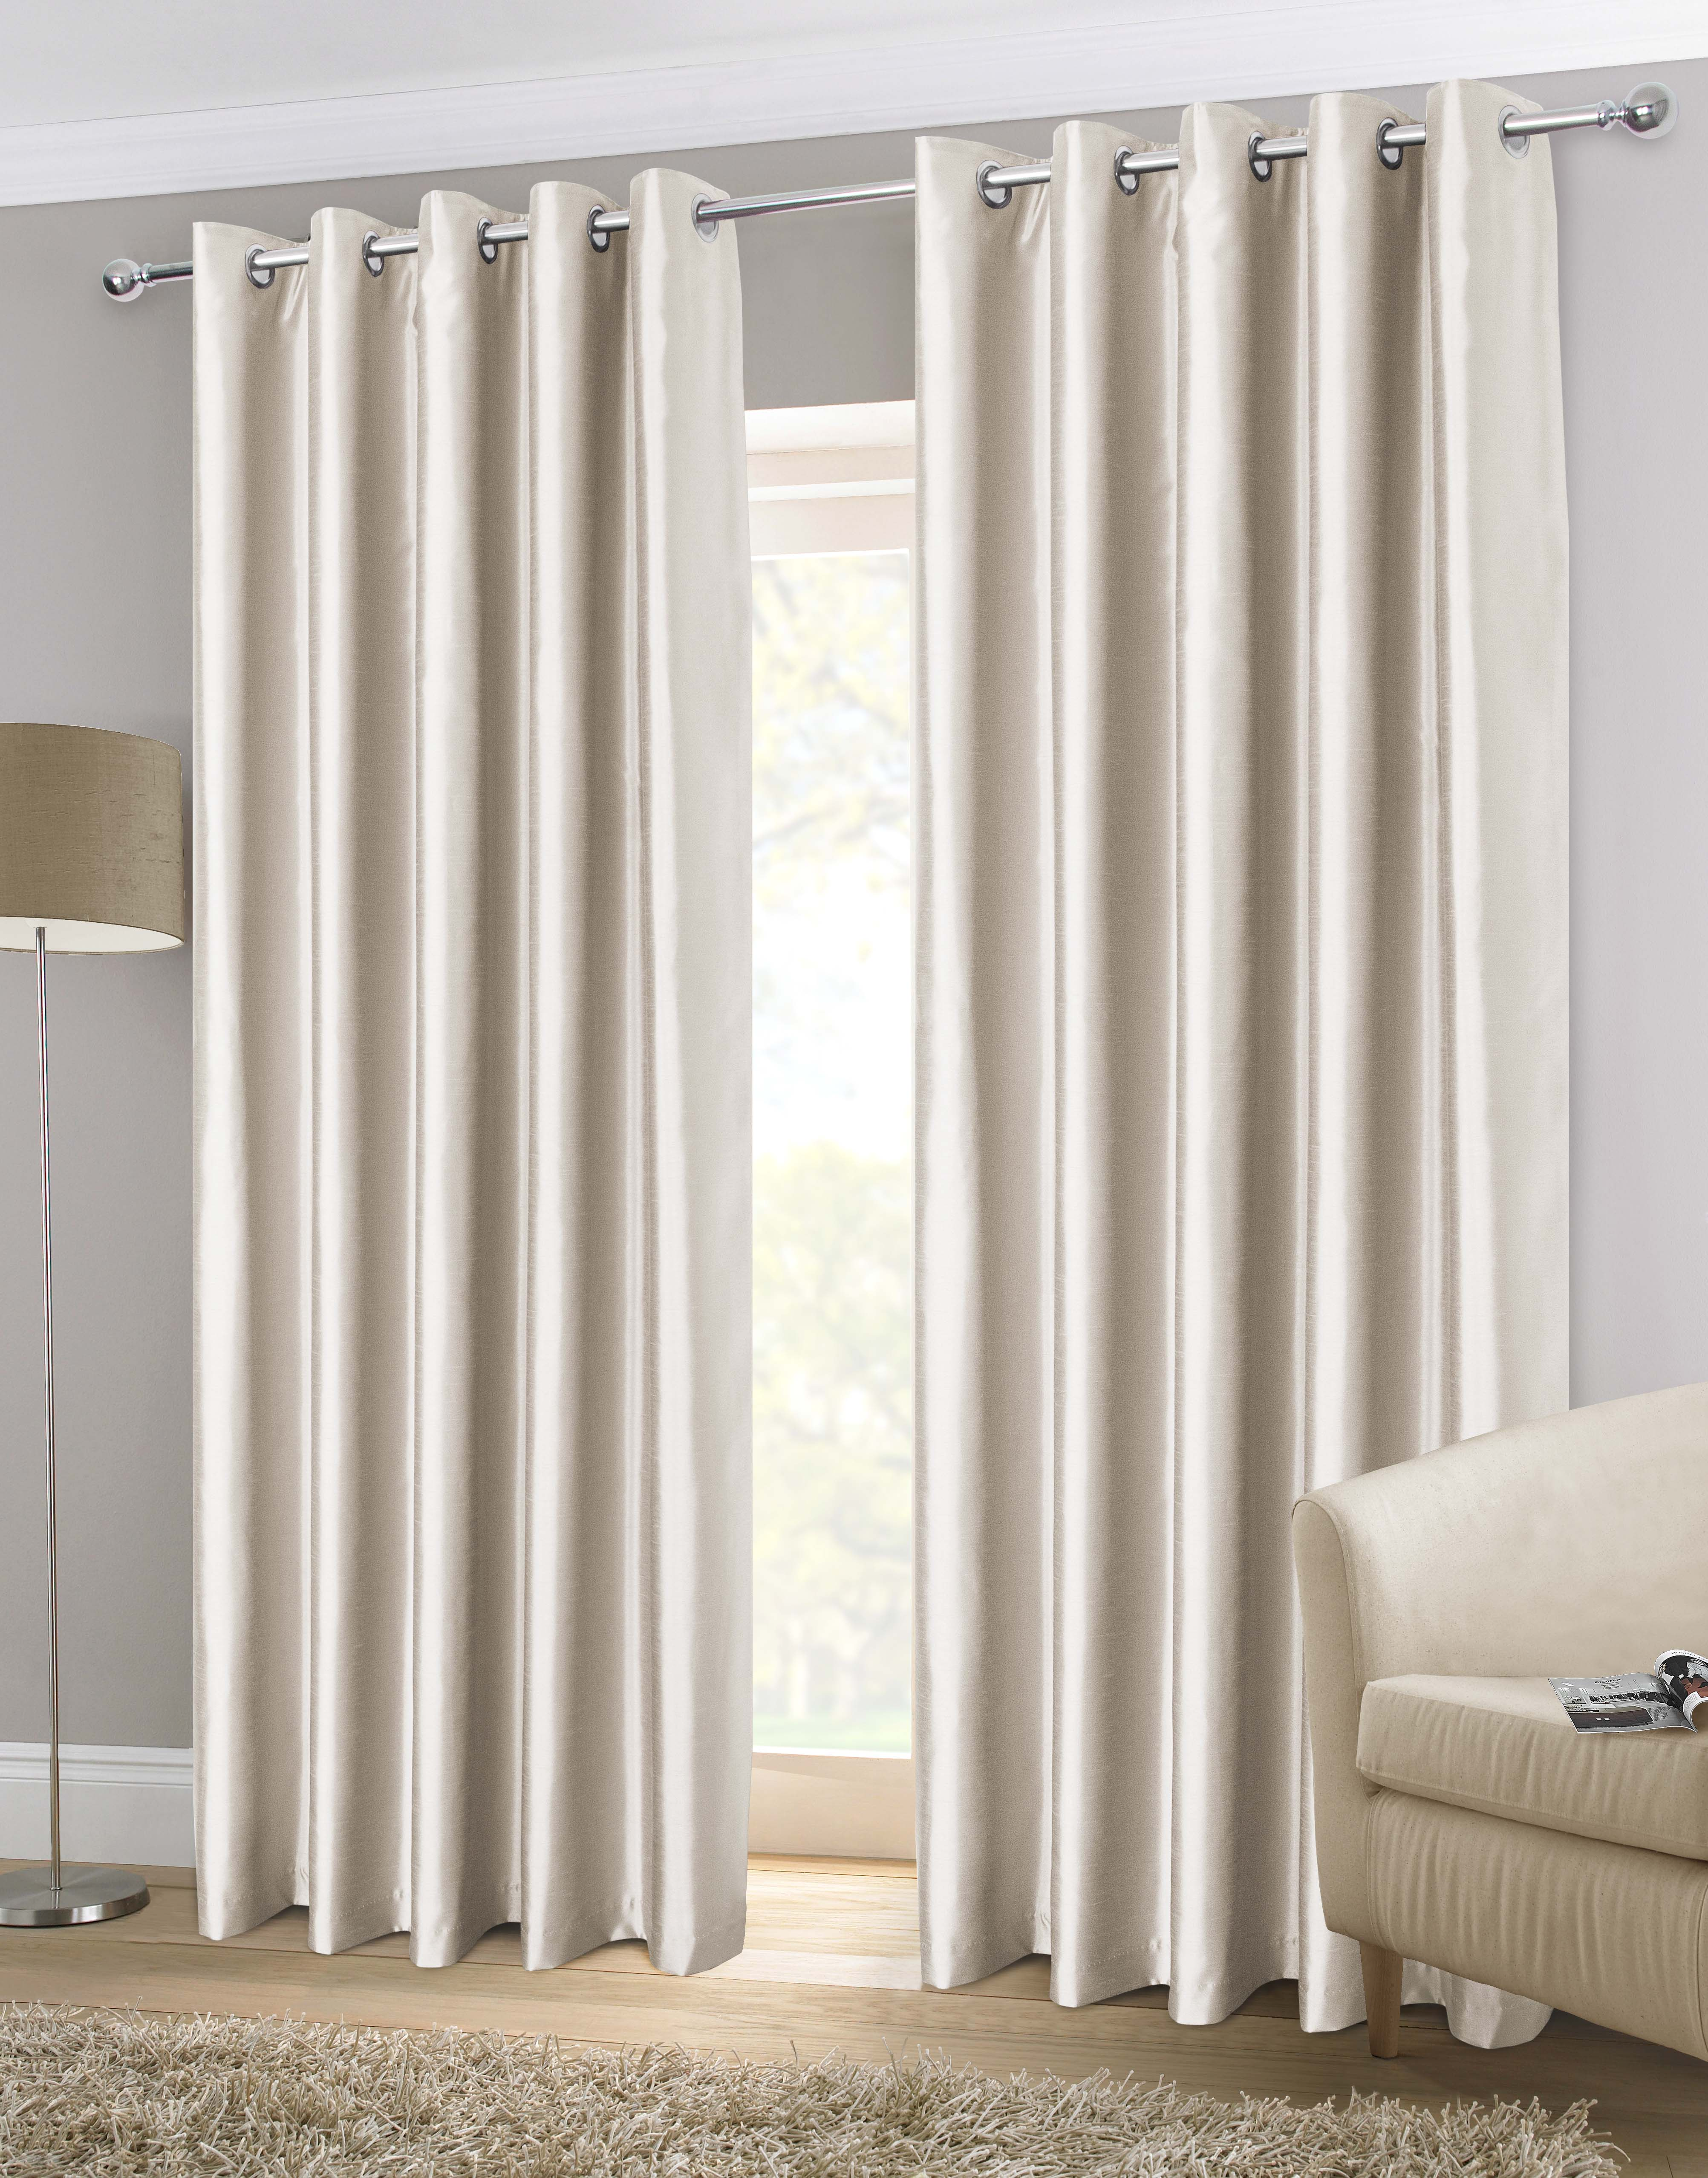 Faux Silk Eyelet Curtains At Home